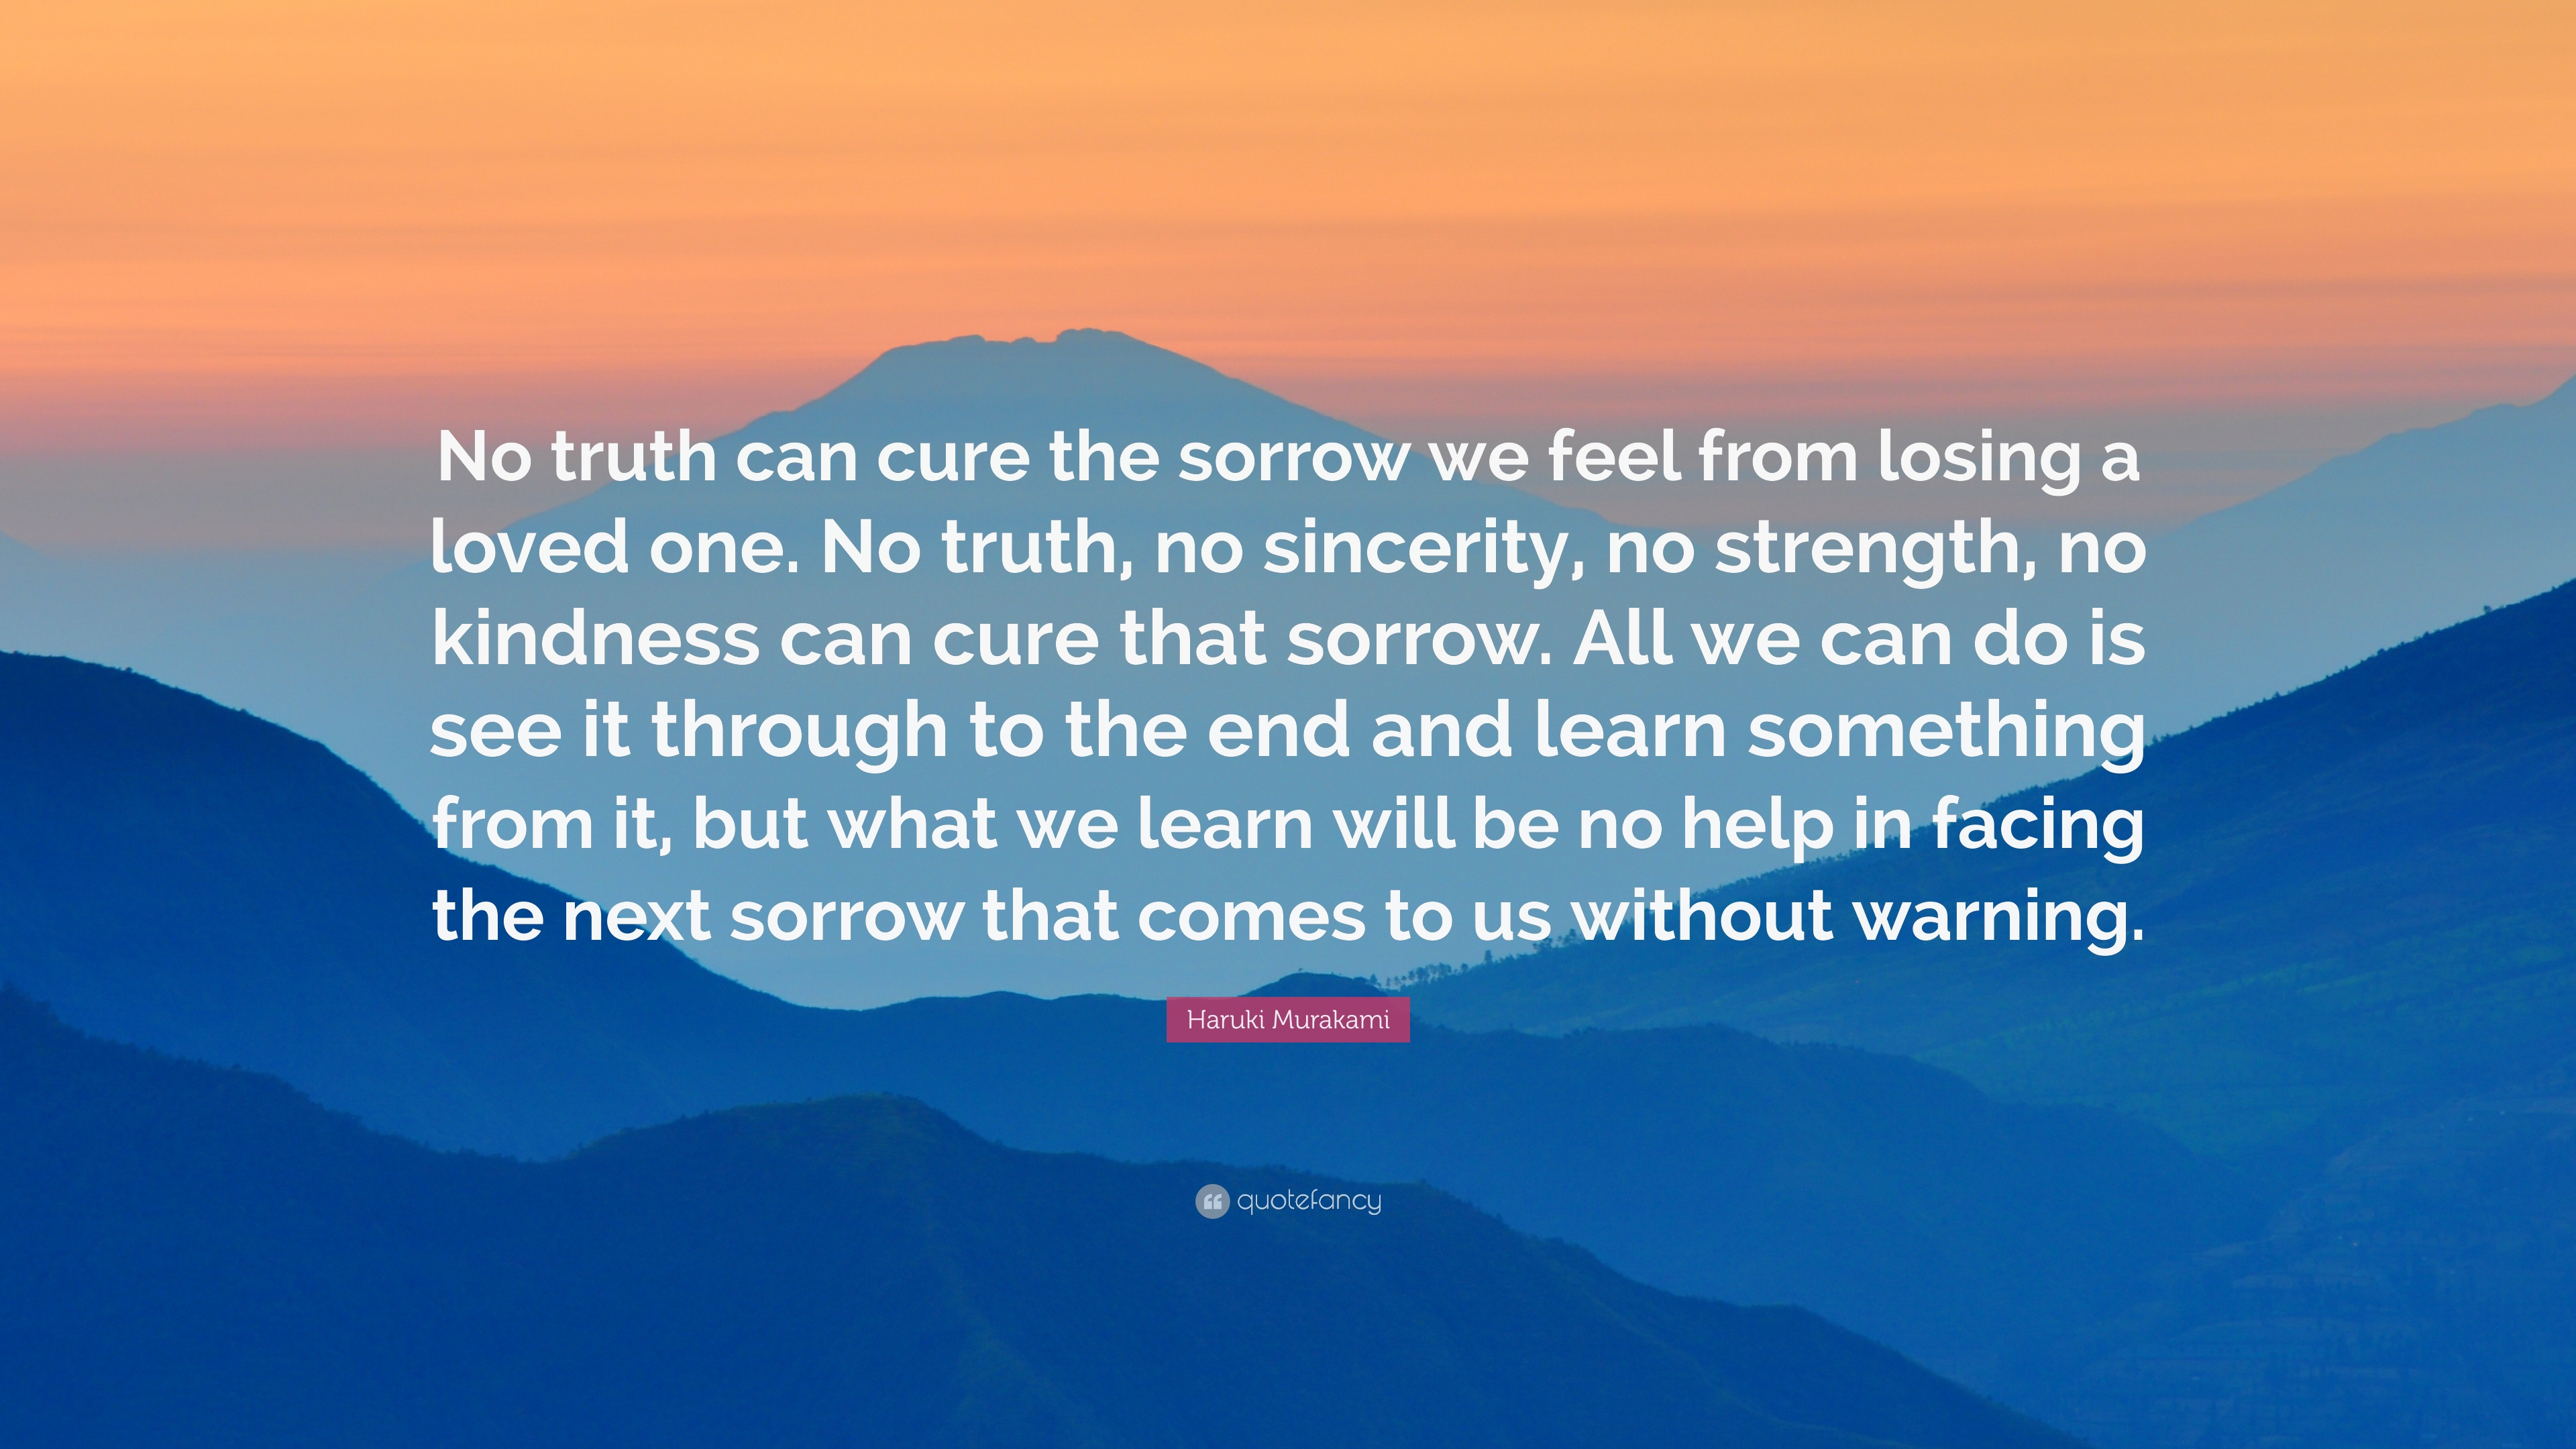 Strength Quotes For Loss Of A Loved One Facebook